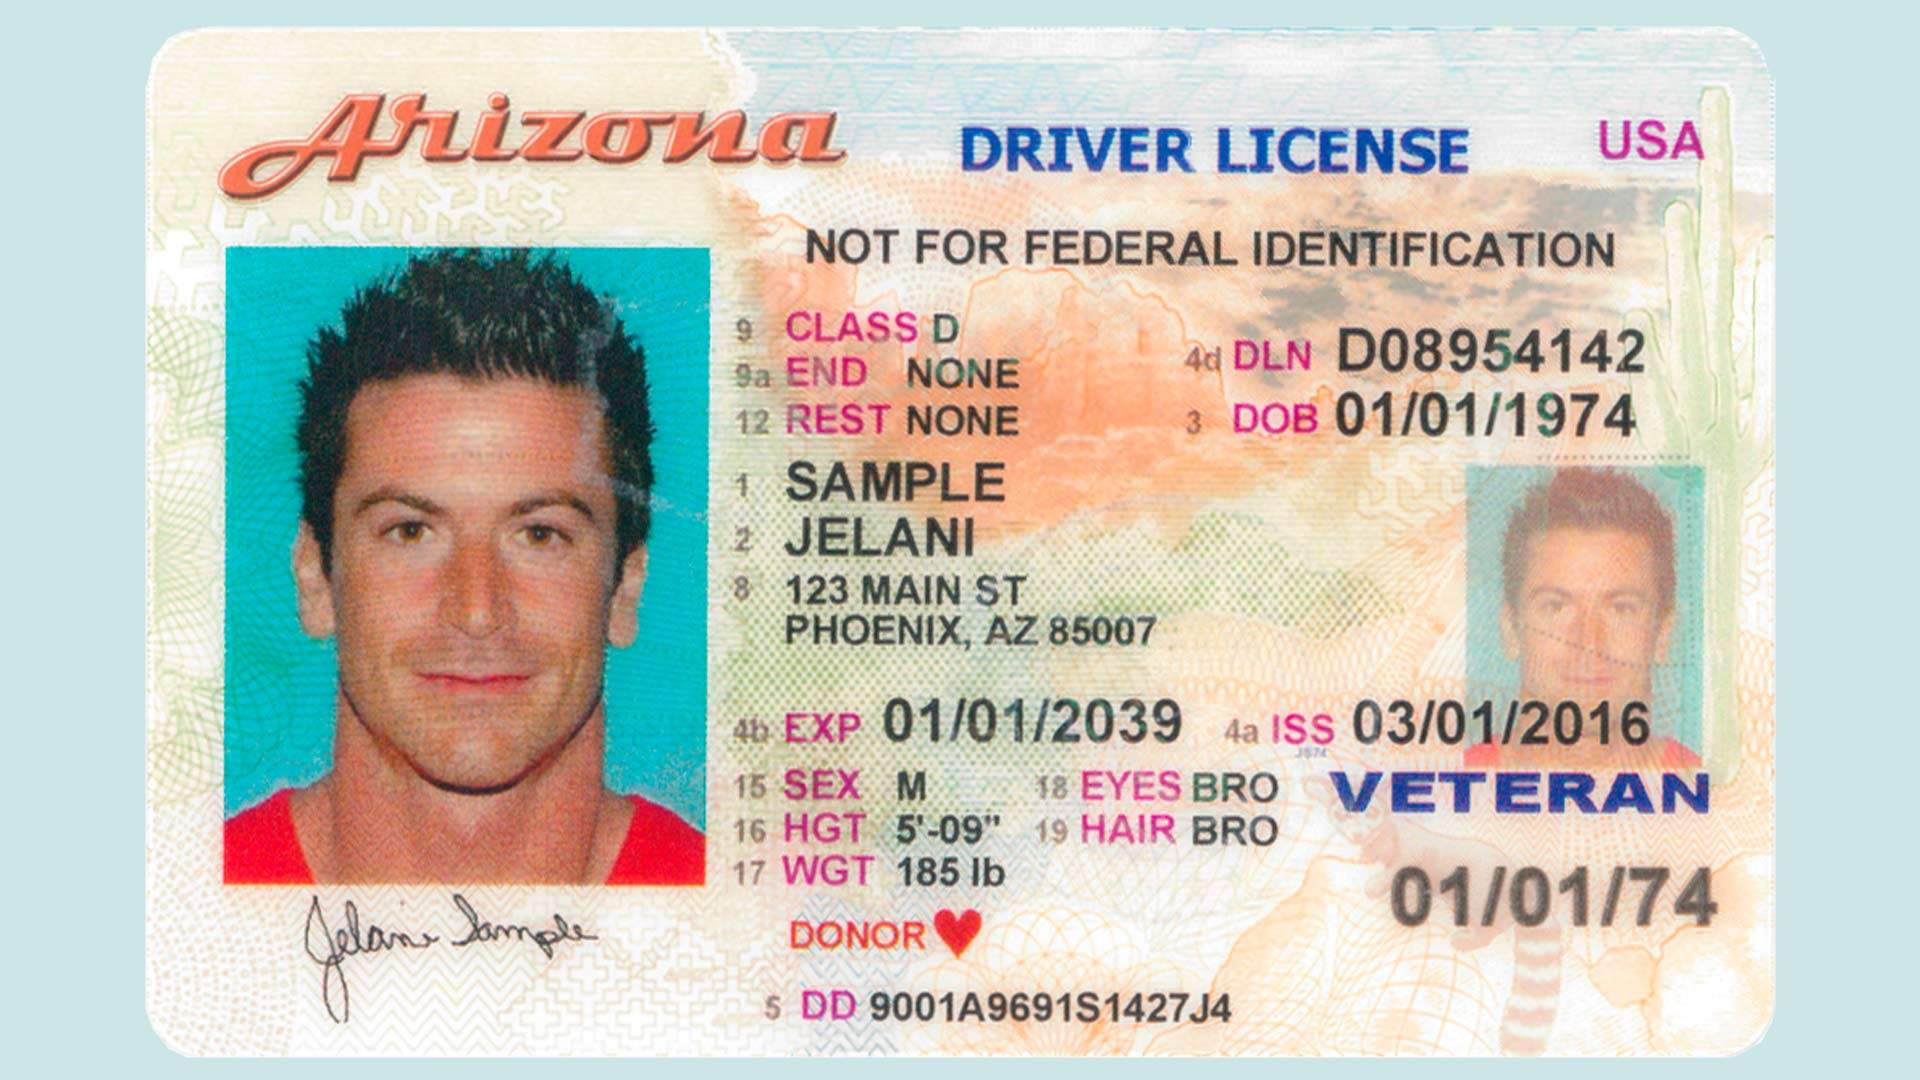 Example of an Arizona driver's license.